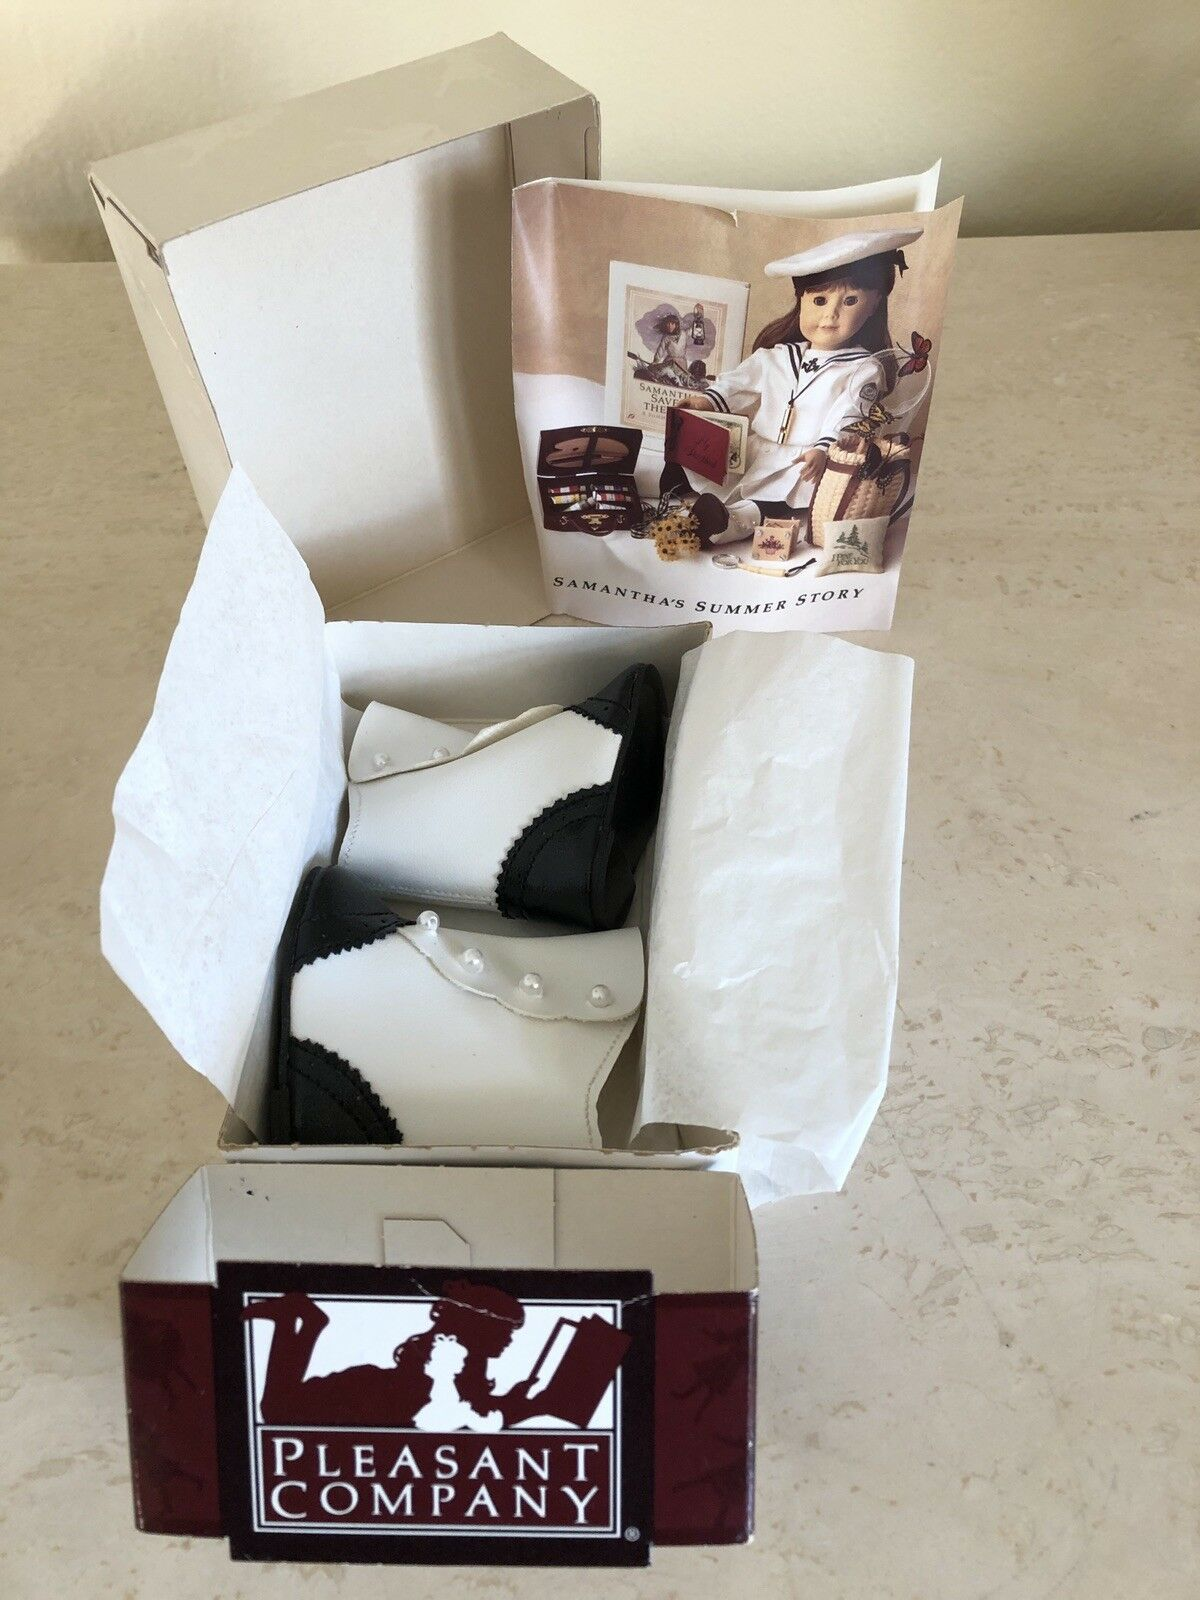 Pleasant Company American Girl SAMANTHA VICTORIAN Summer Story BOOT SHOES In BOX